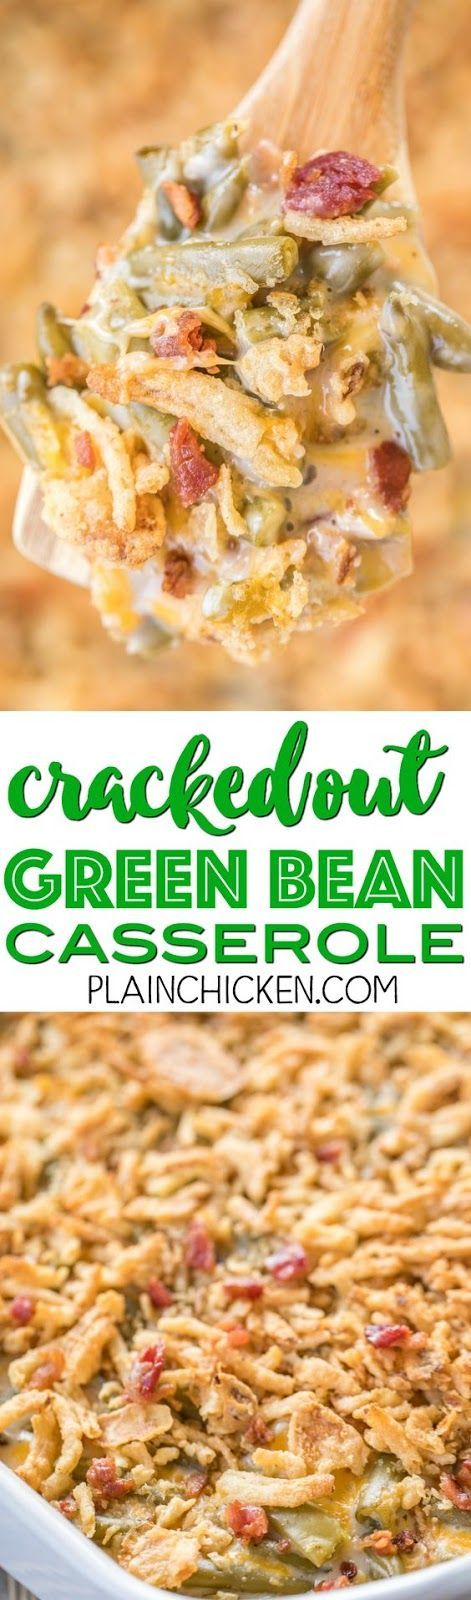 CRACKED OUT GREEN BEAN CASSEROLE | My Favorite food and Recipe